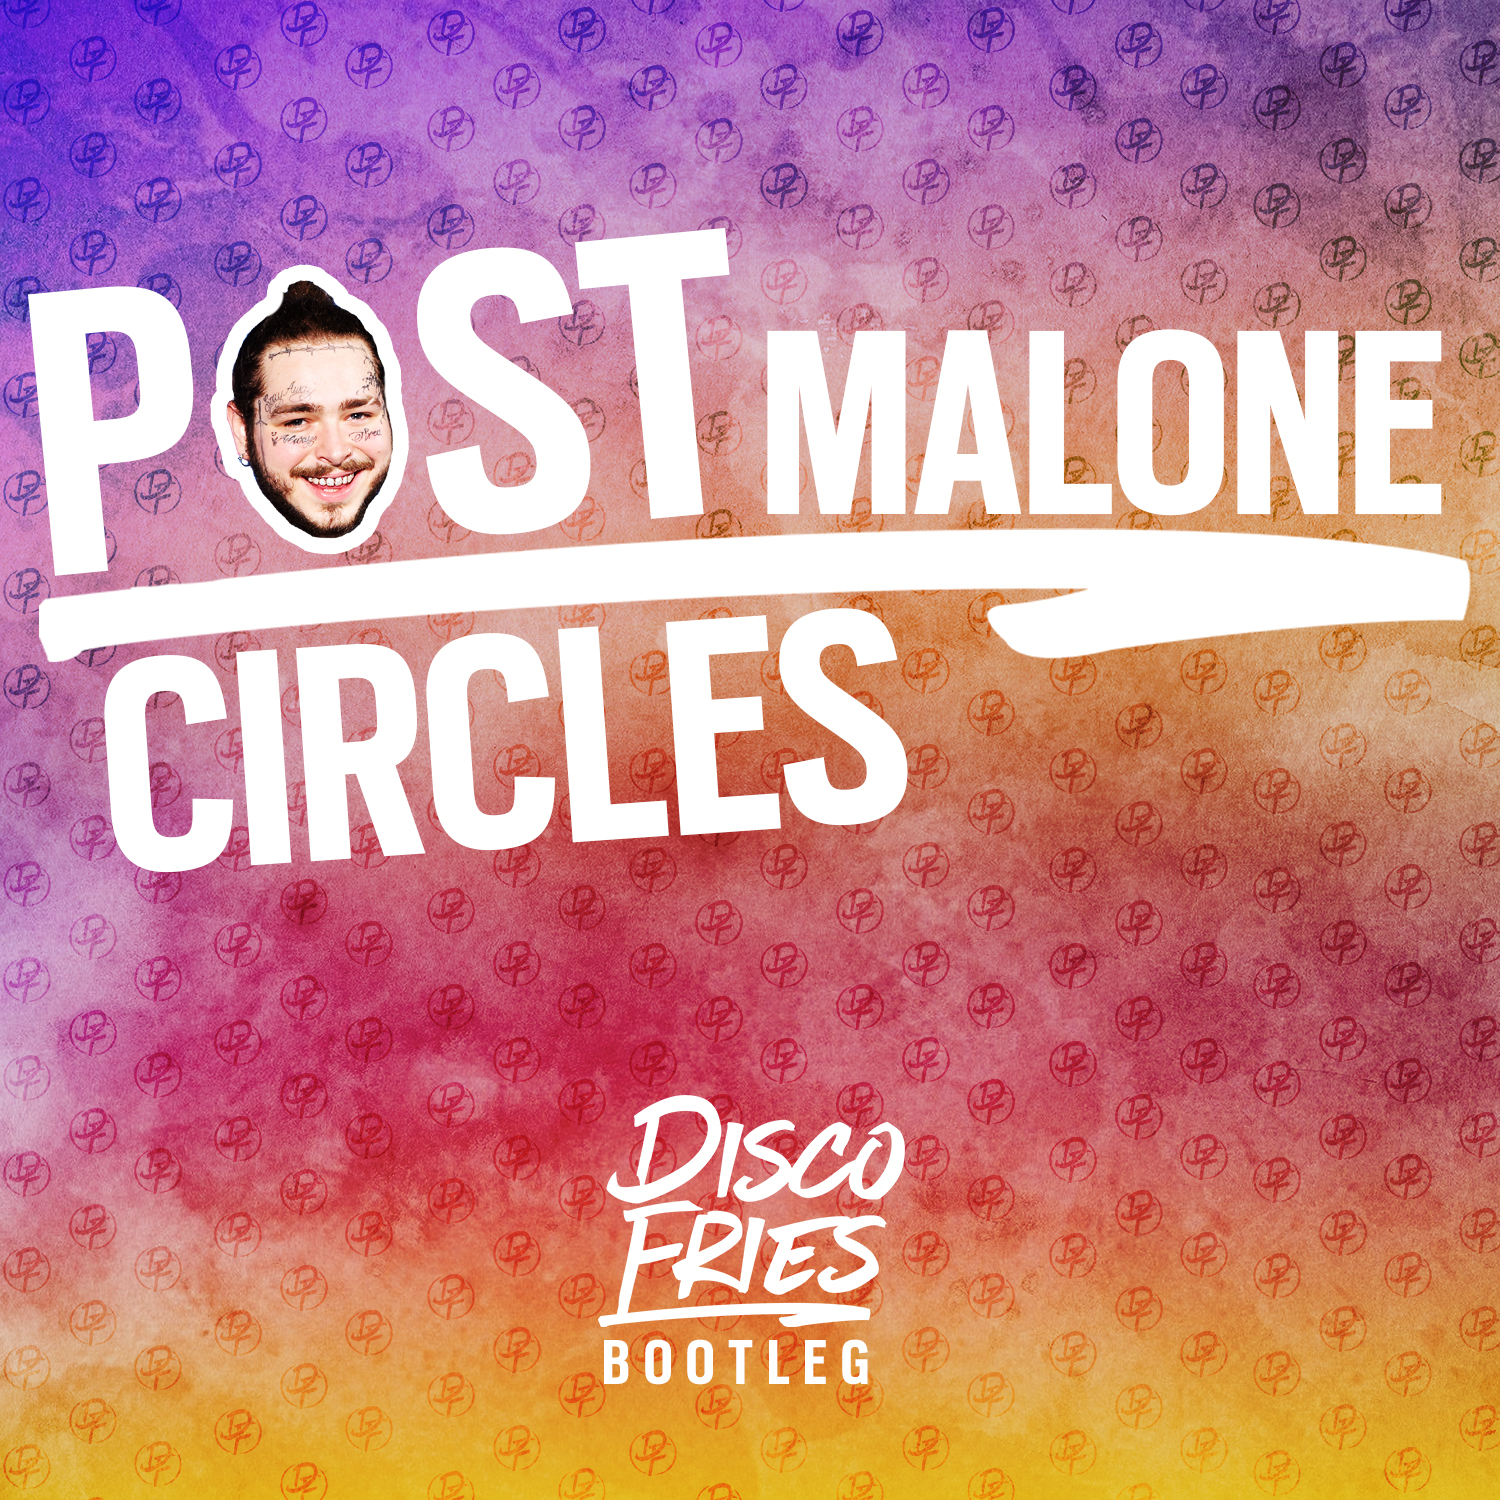 Circles (Disco Fries Bootleg) By Post Malone